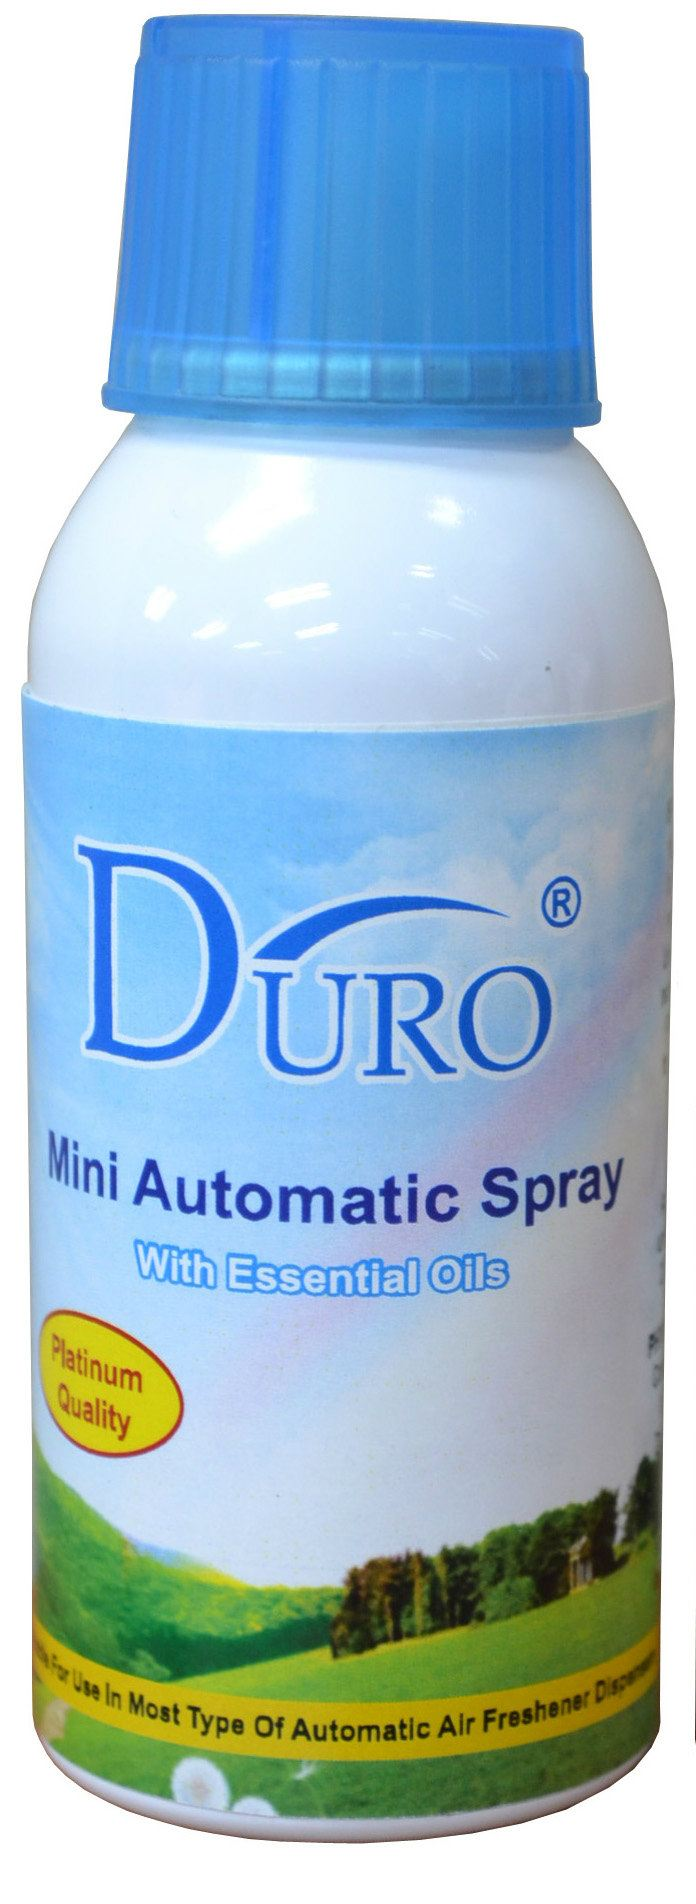 EH DURO® Metered Air Deodorant Air Freshener Dispenser / Aerosol Air Freshener Refill